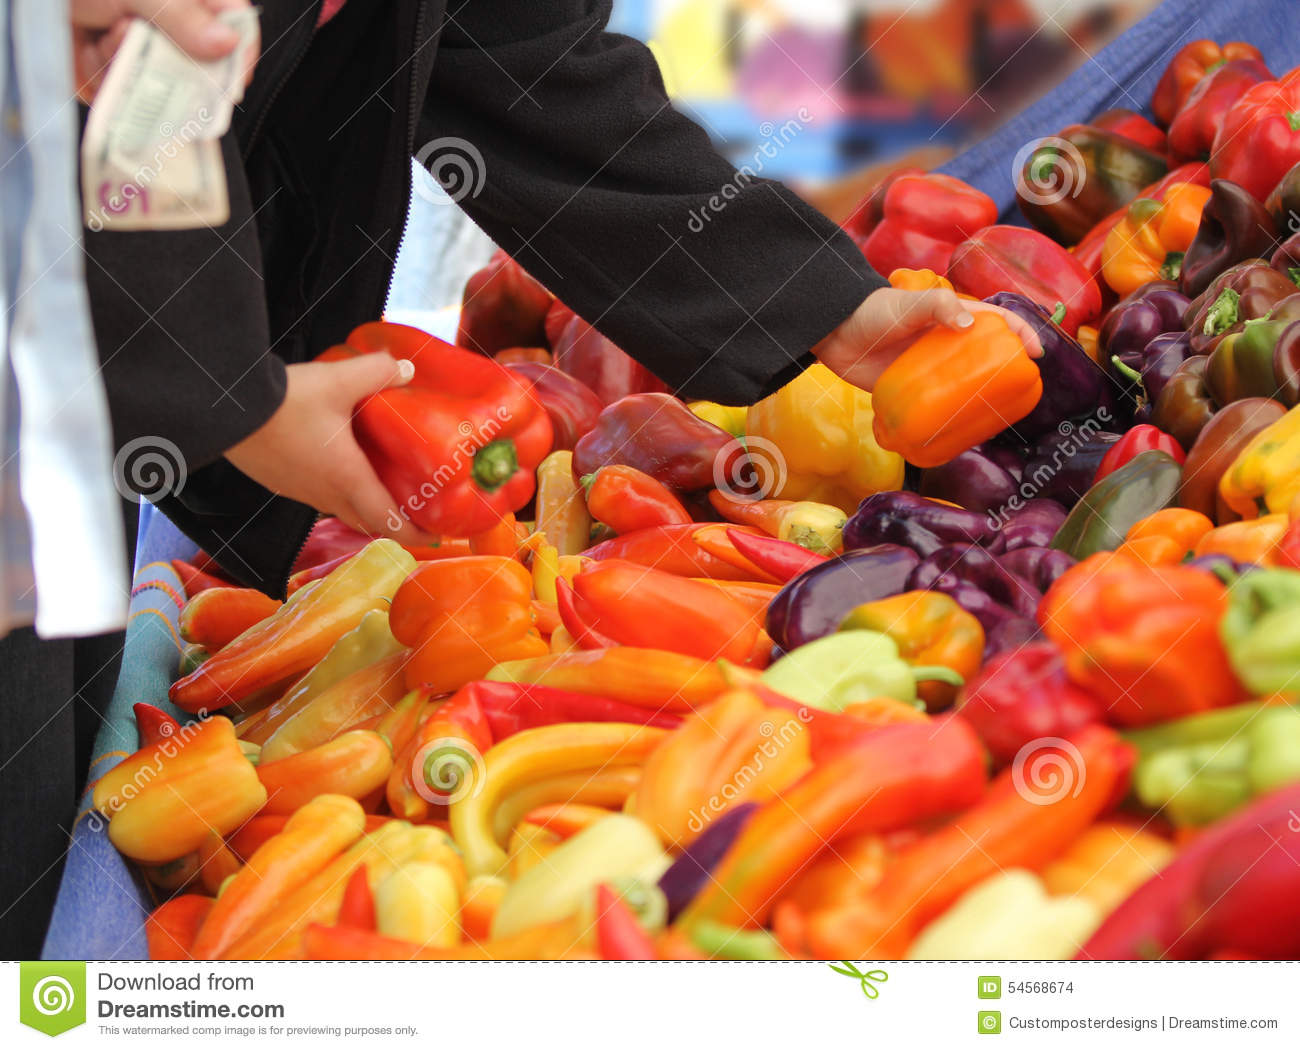 Download Purchasing Produce With Money. Stock Photo - Image of activity, basket: 54568674